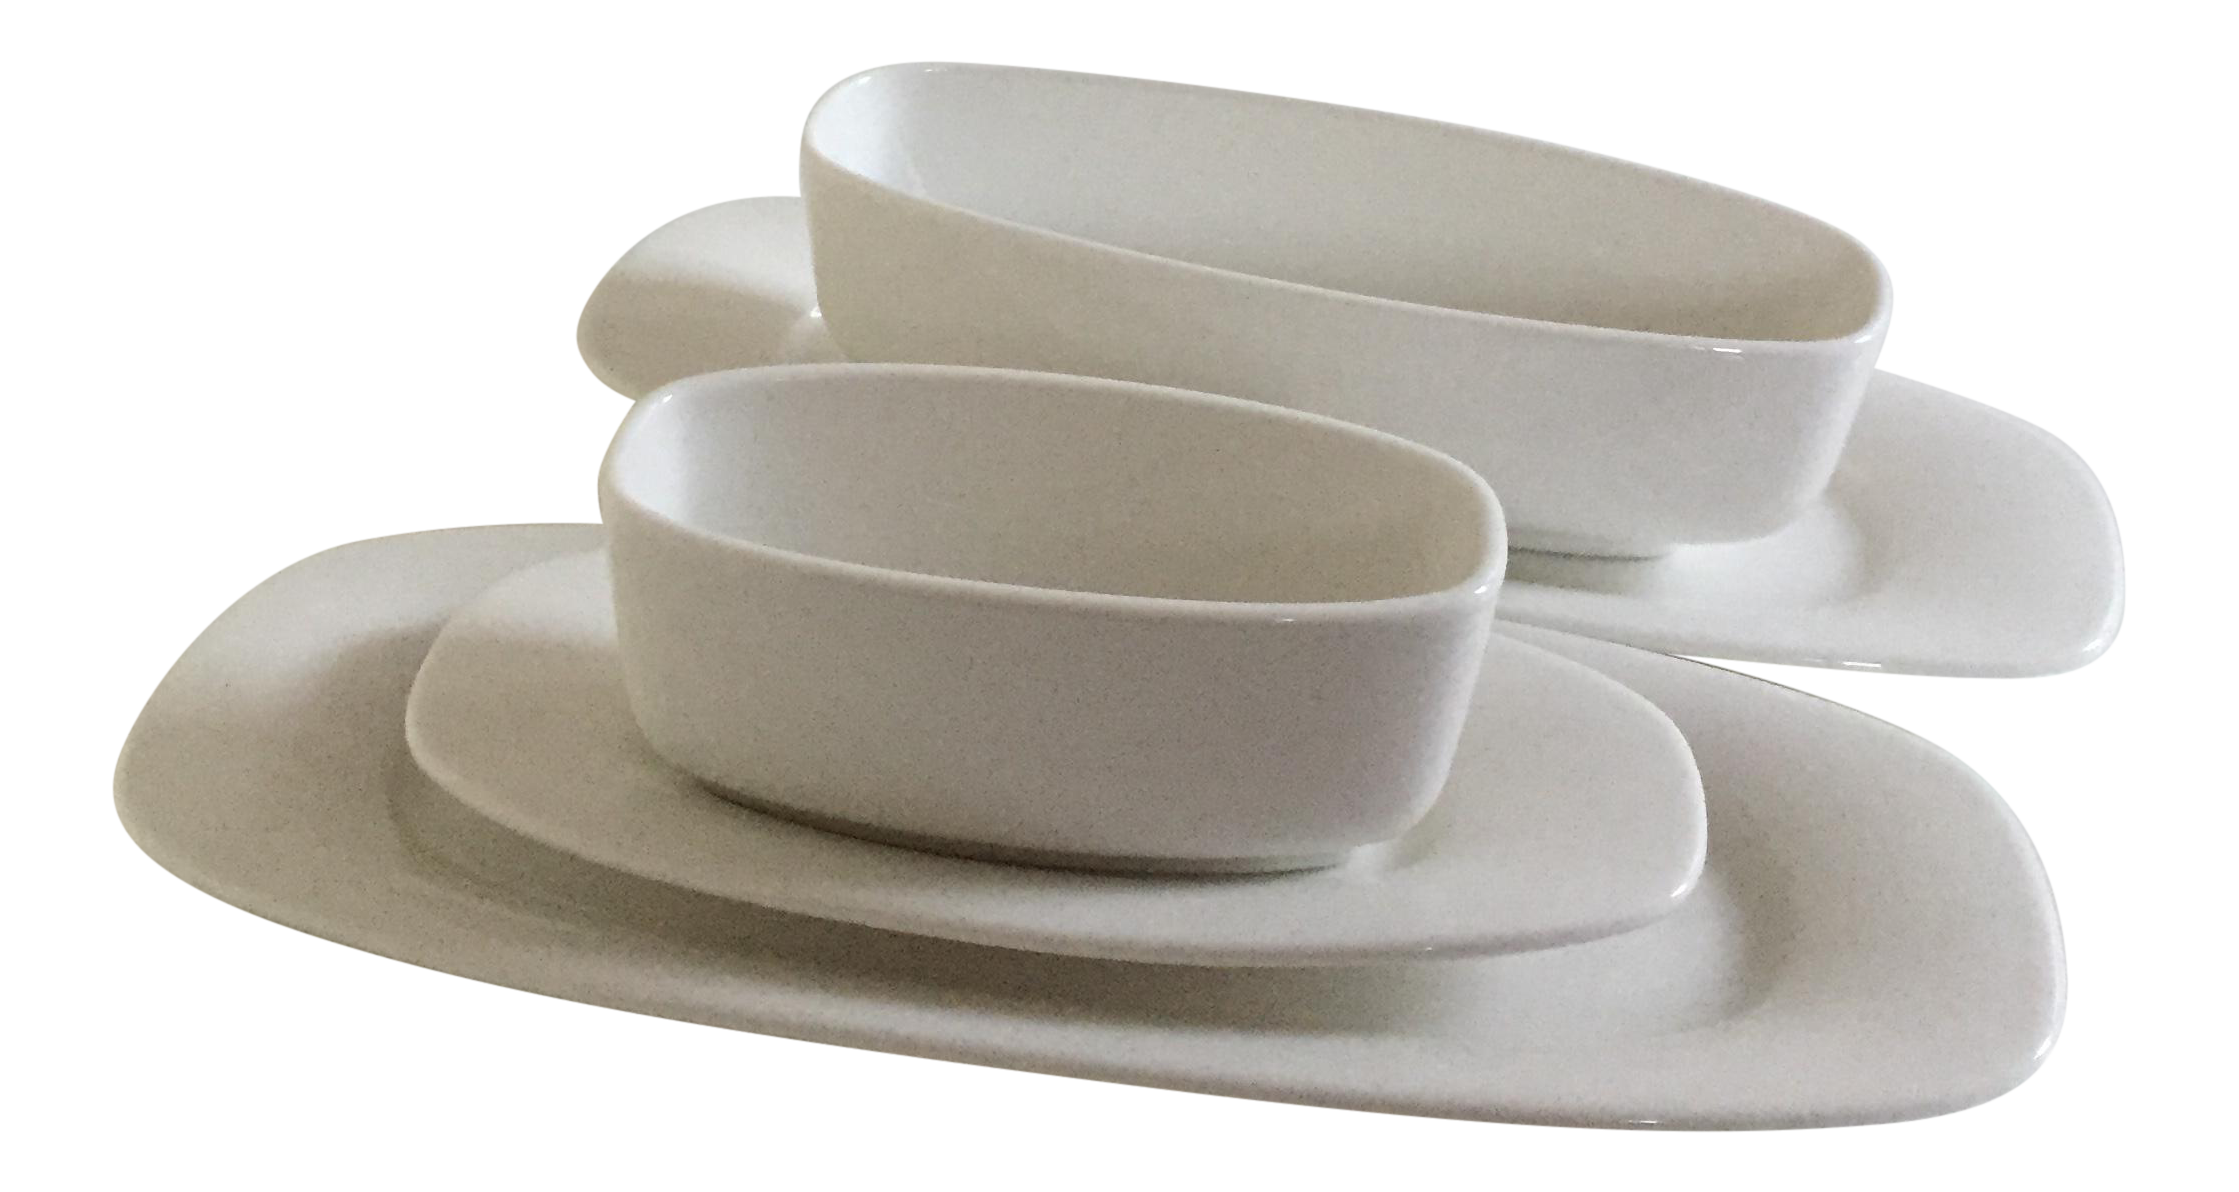 Villeroy u0026 Boch Affinity White Premium Porcelain Oval Plates u0026 Sides Dishes - Set of 5 | Chairish  sc 1 st  Chairish : oval dinnerware sets - pezcame.com